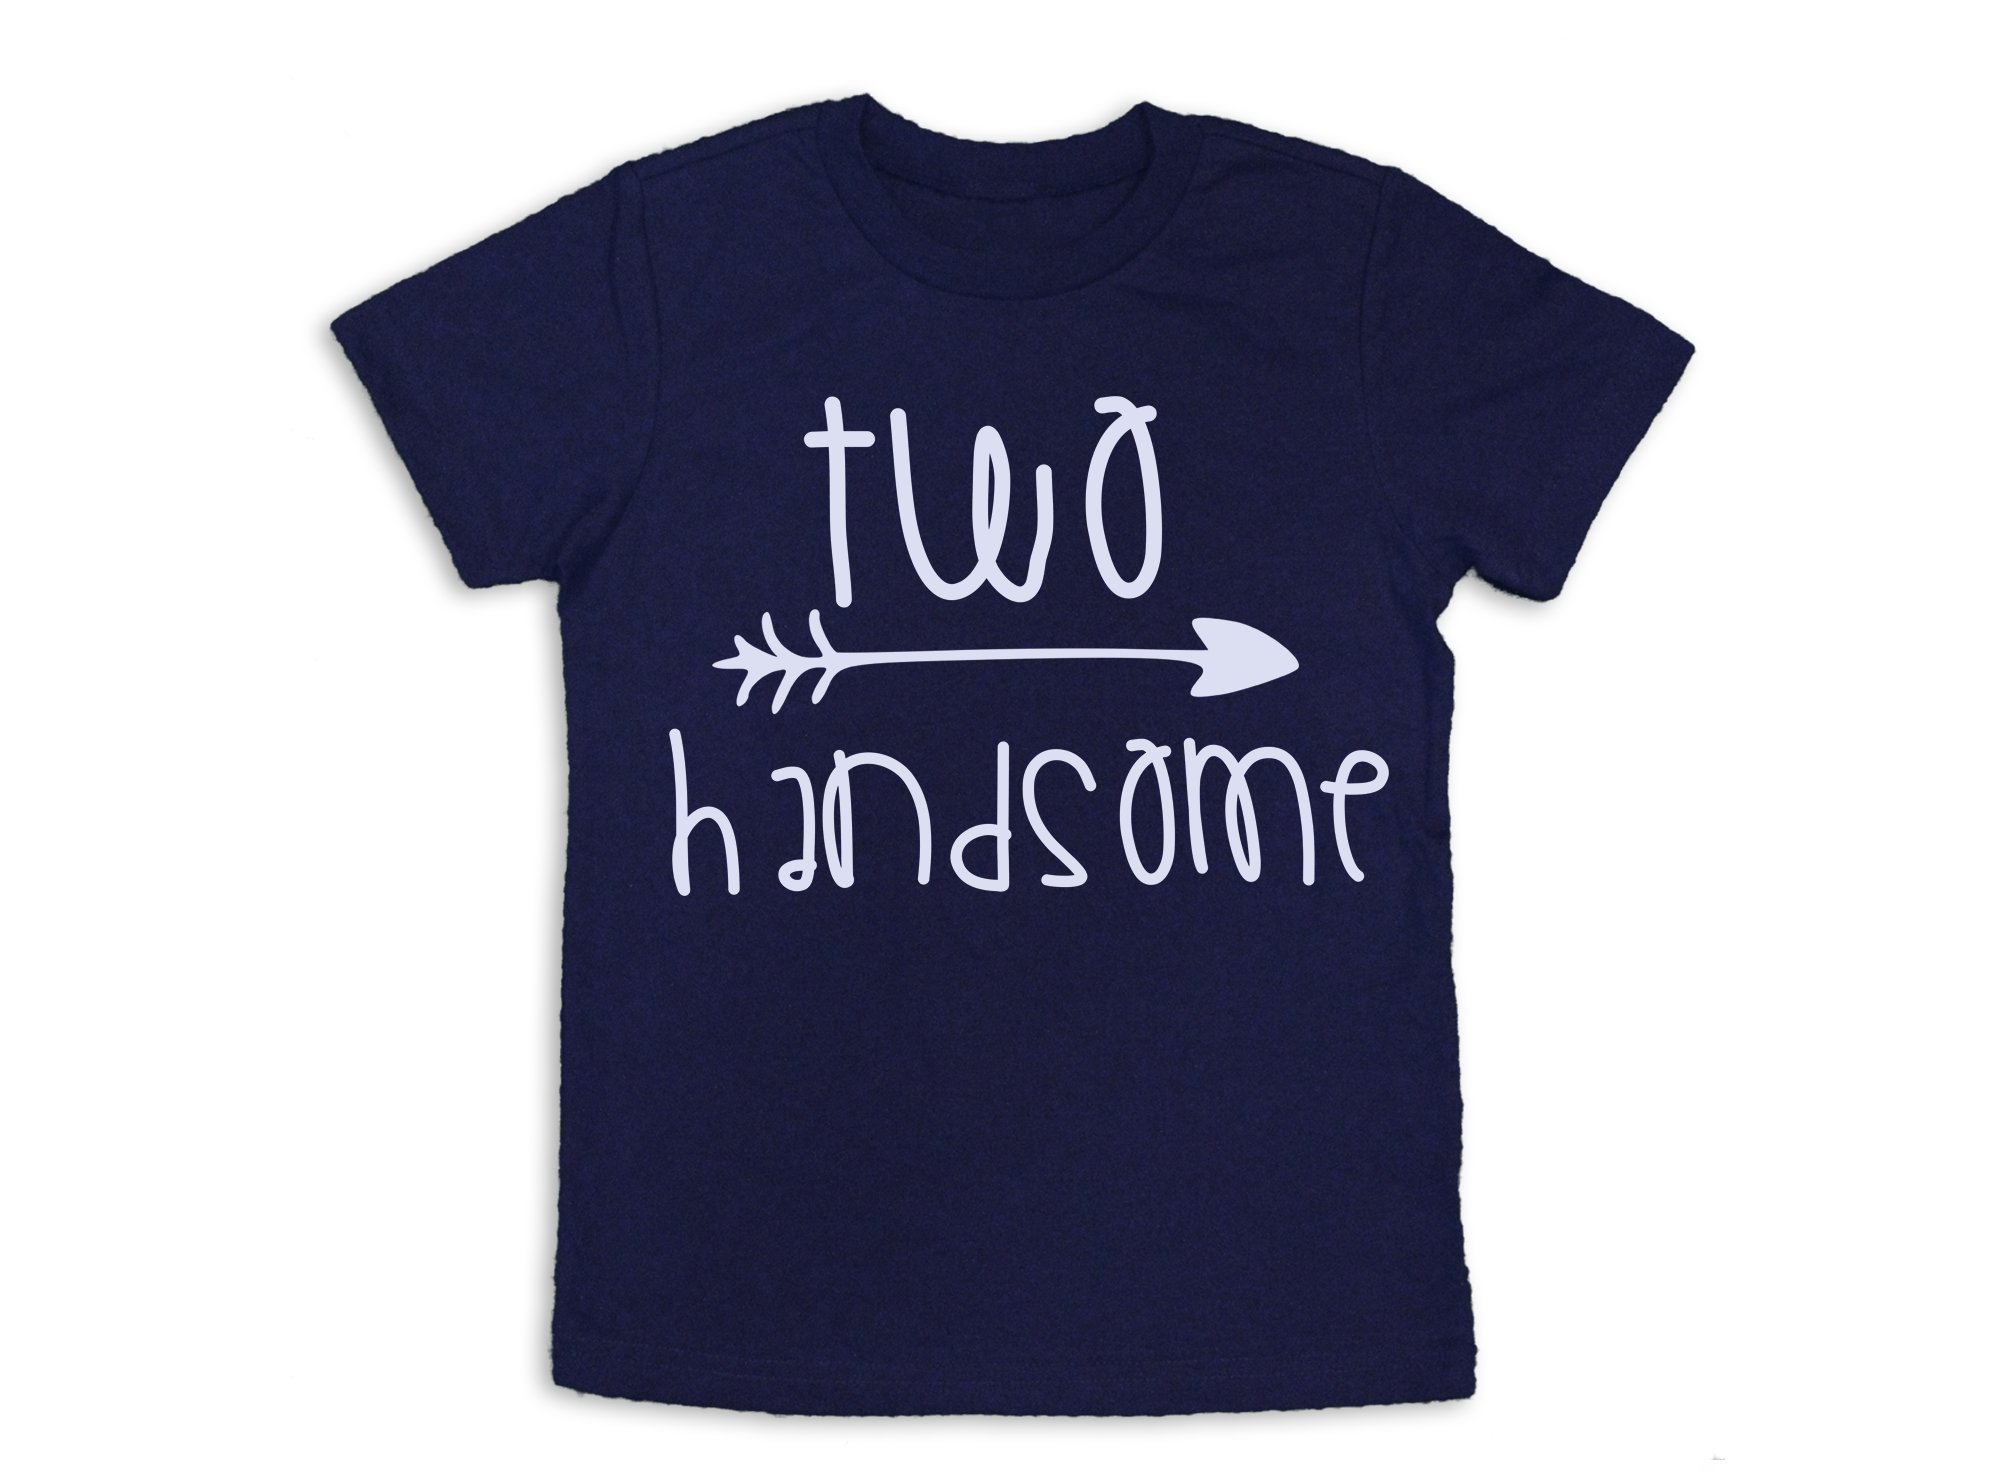 Second Birthday Shirt Two Handsome Shirt 2nd Birthday Tee (Navy Blue, 3T) by Oliver and Olivia Apparel (Image #1)